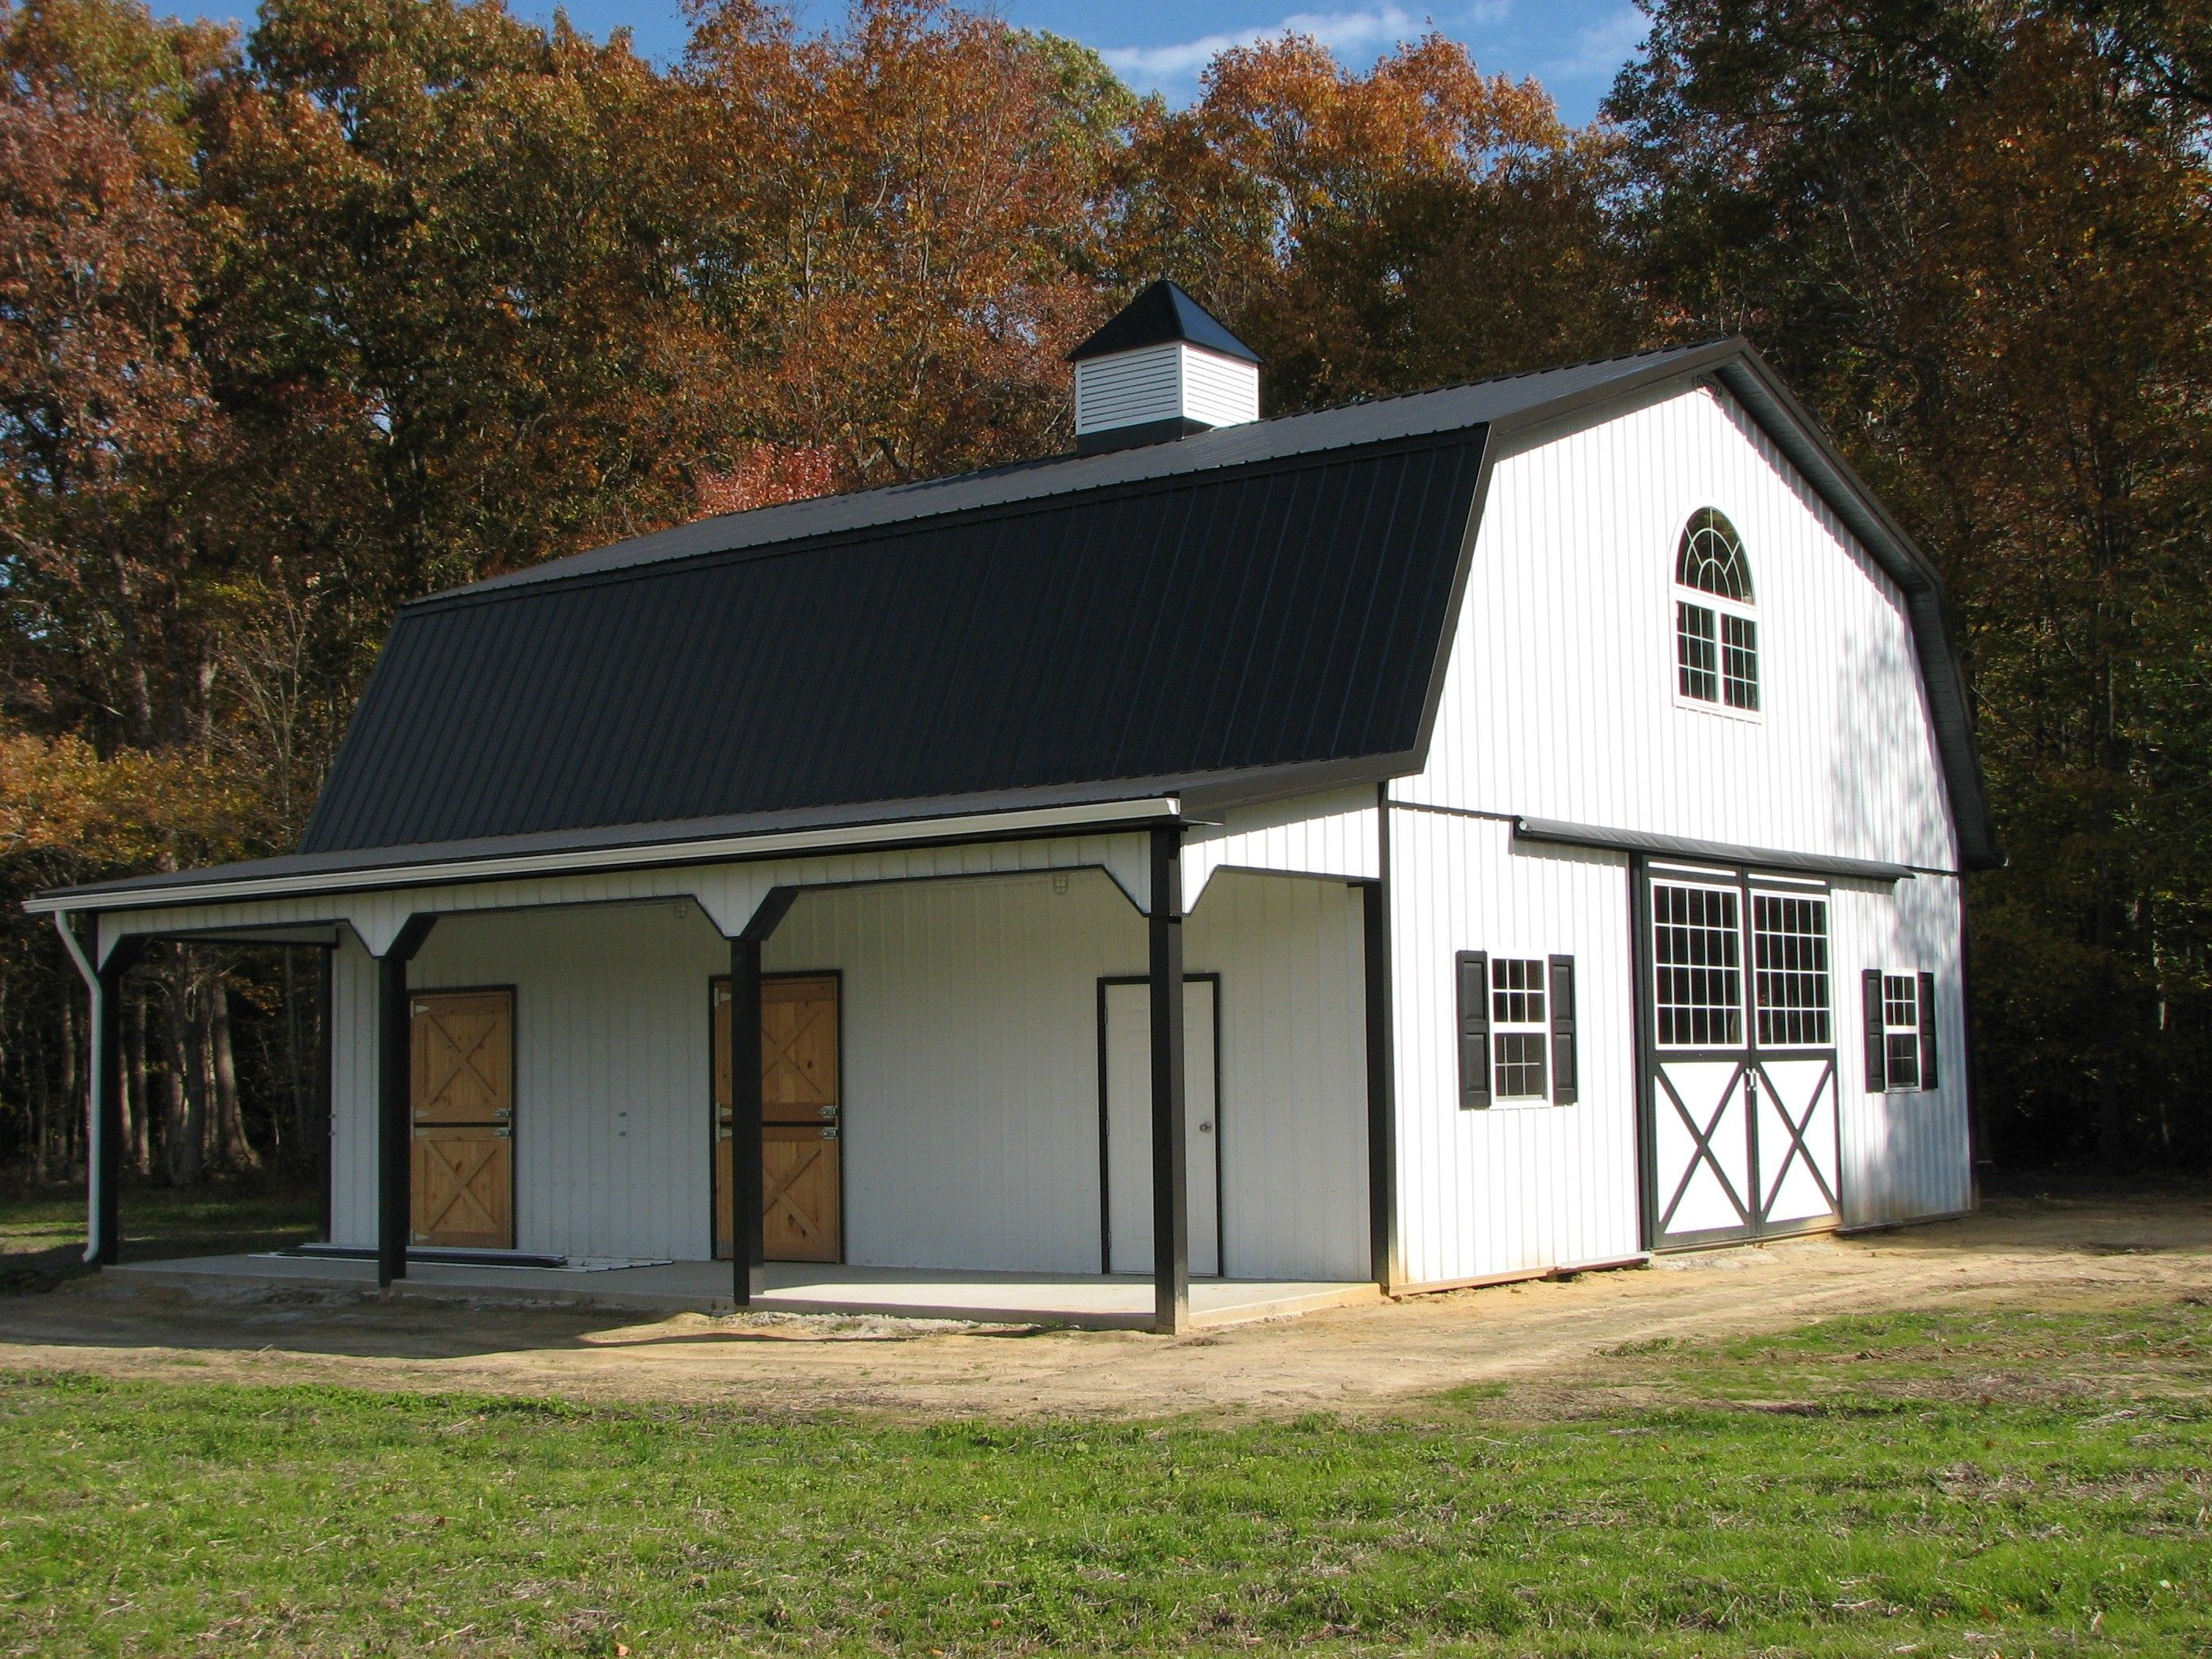 Flexible and adaptable pole barn house plans for you Barnhouse builders